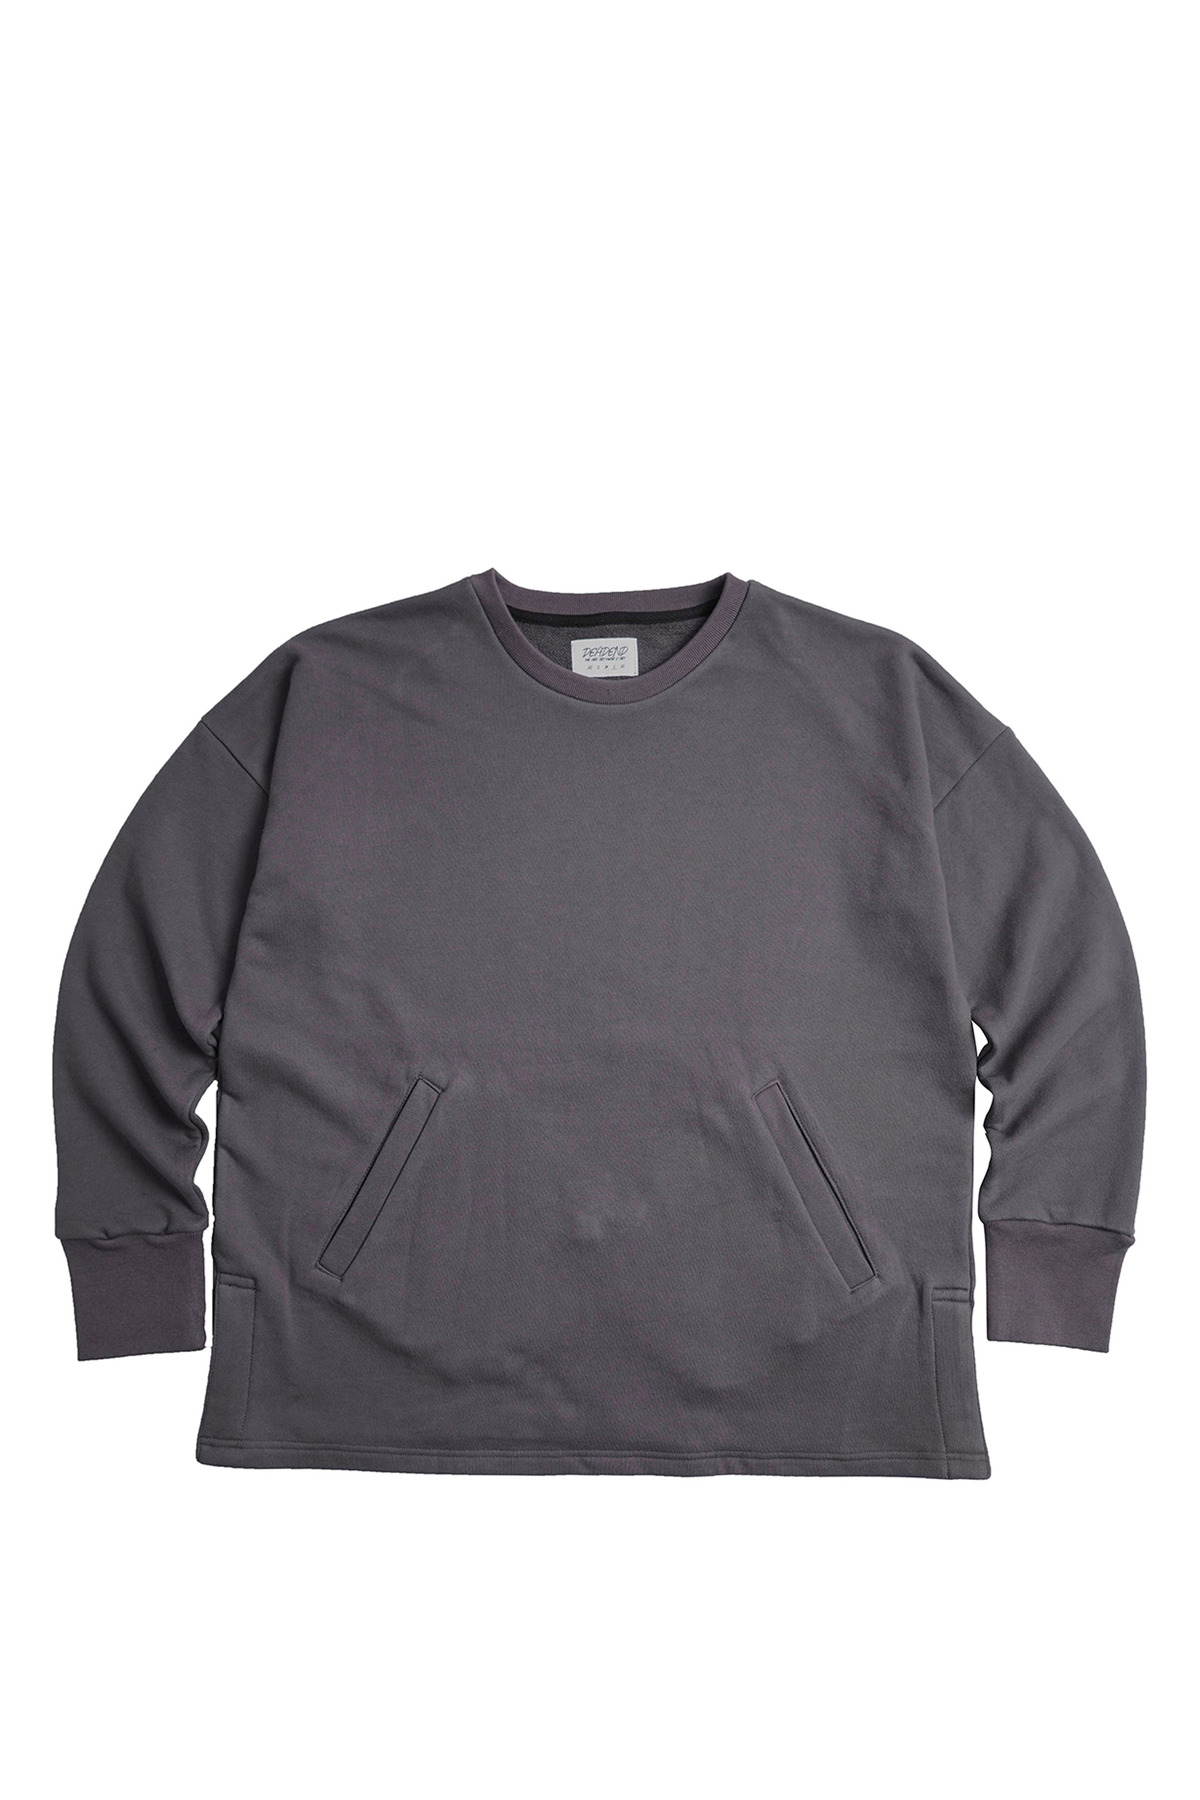 CHARCOAL SET IN RAGLAN SWEAT SHIRTS